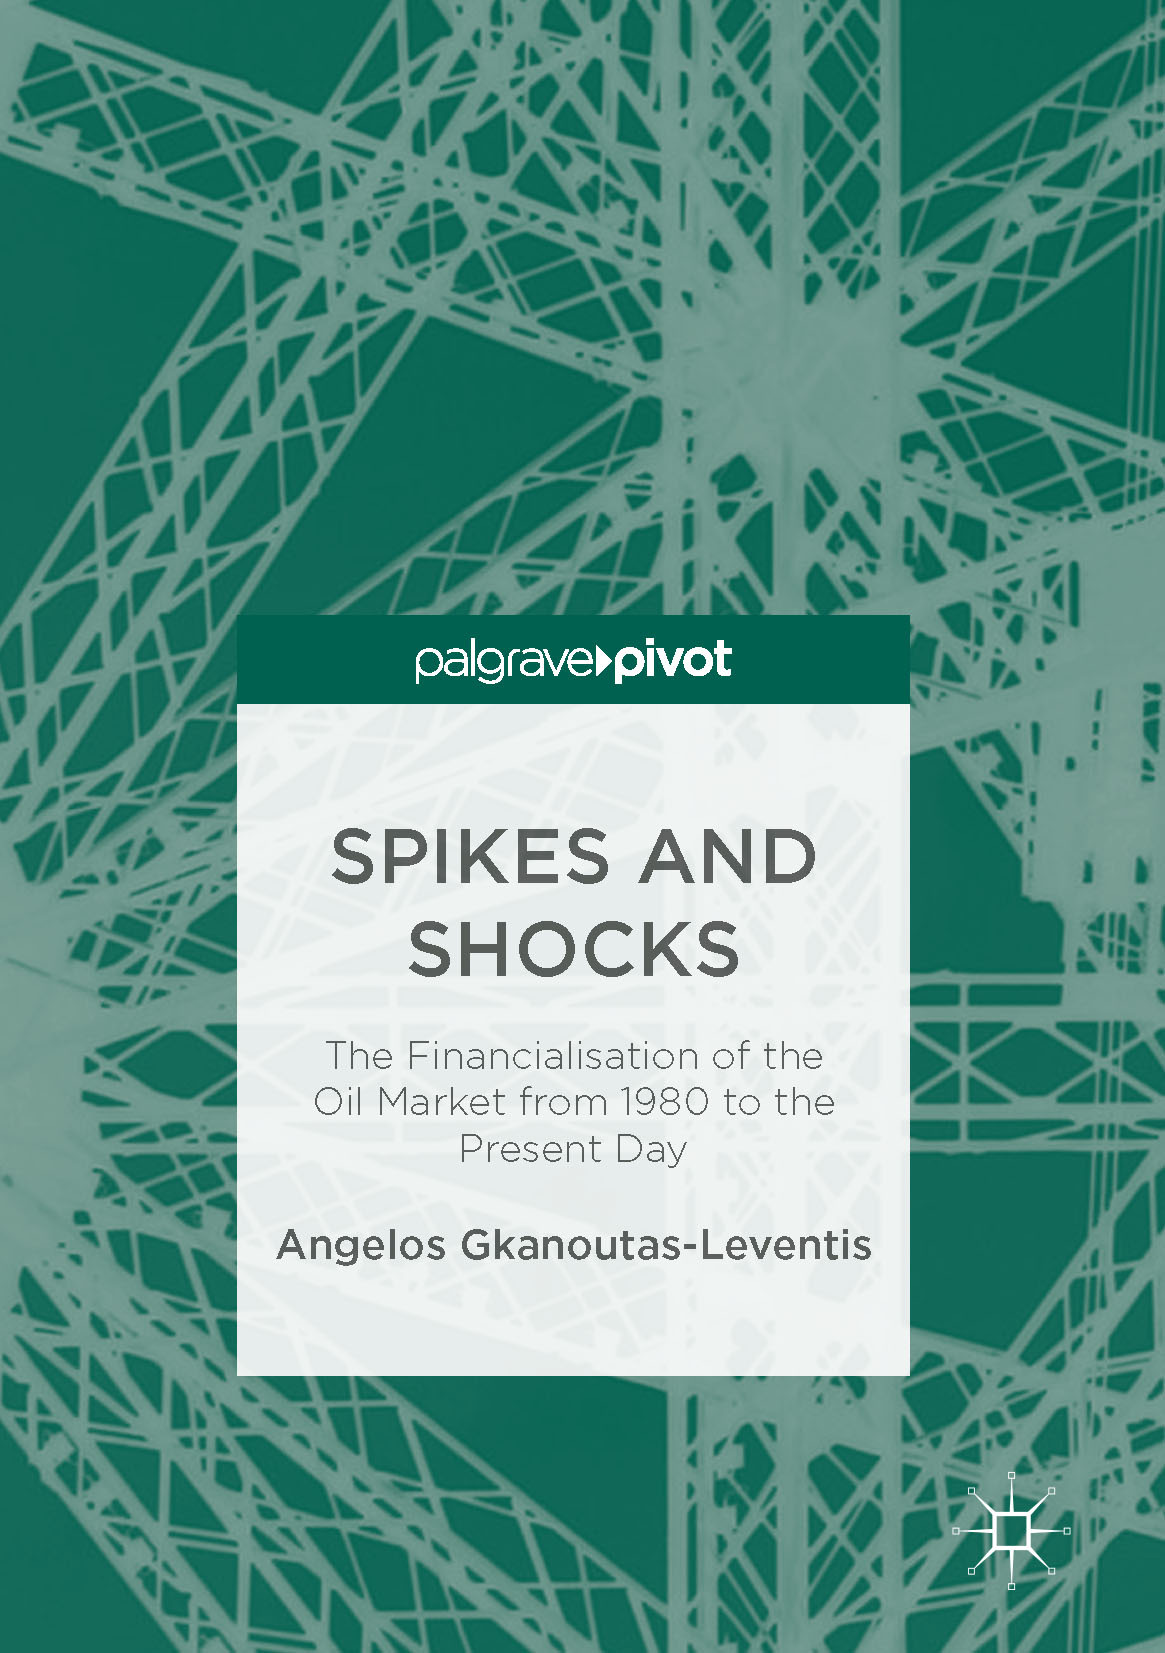 Gkanoutas-Leventis, Angelos - Spikes and Shocks, ebook